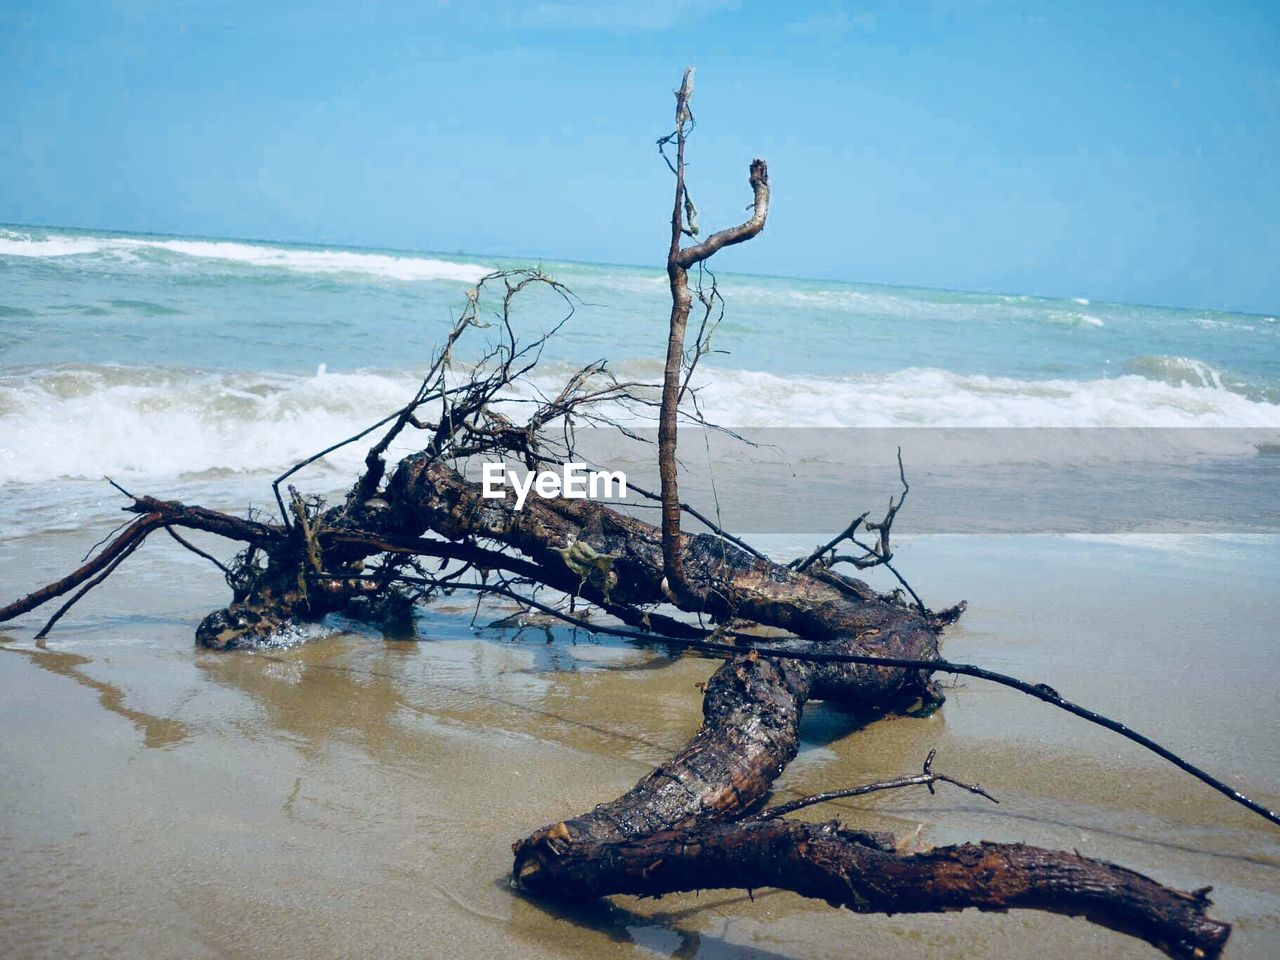 water, sea, beach, land, driftwood, horizon, horizon over water, nature, wood, beauty in nature, sky, scenics - nature, tranquility, day, dead plant, no people, wave, sand, log, outdoors